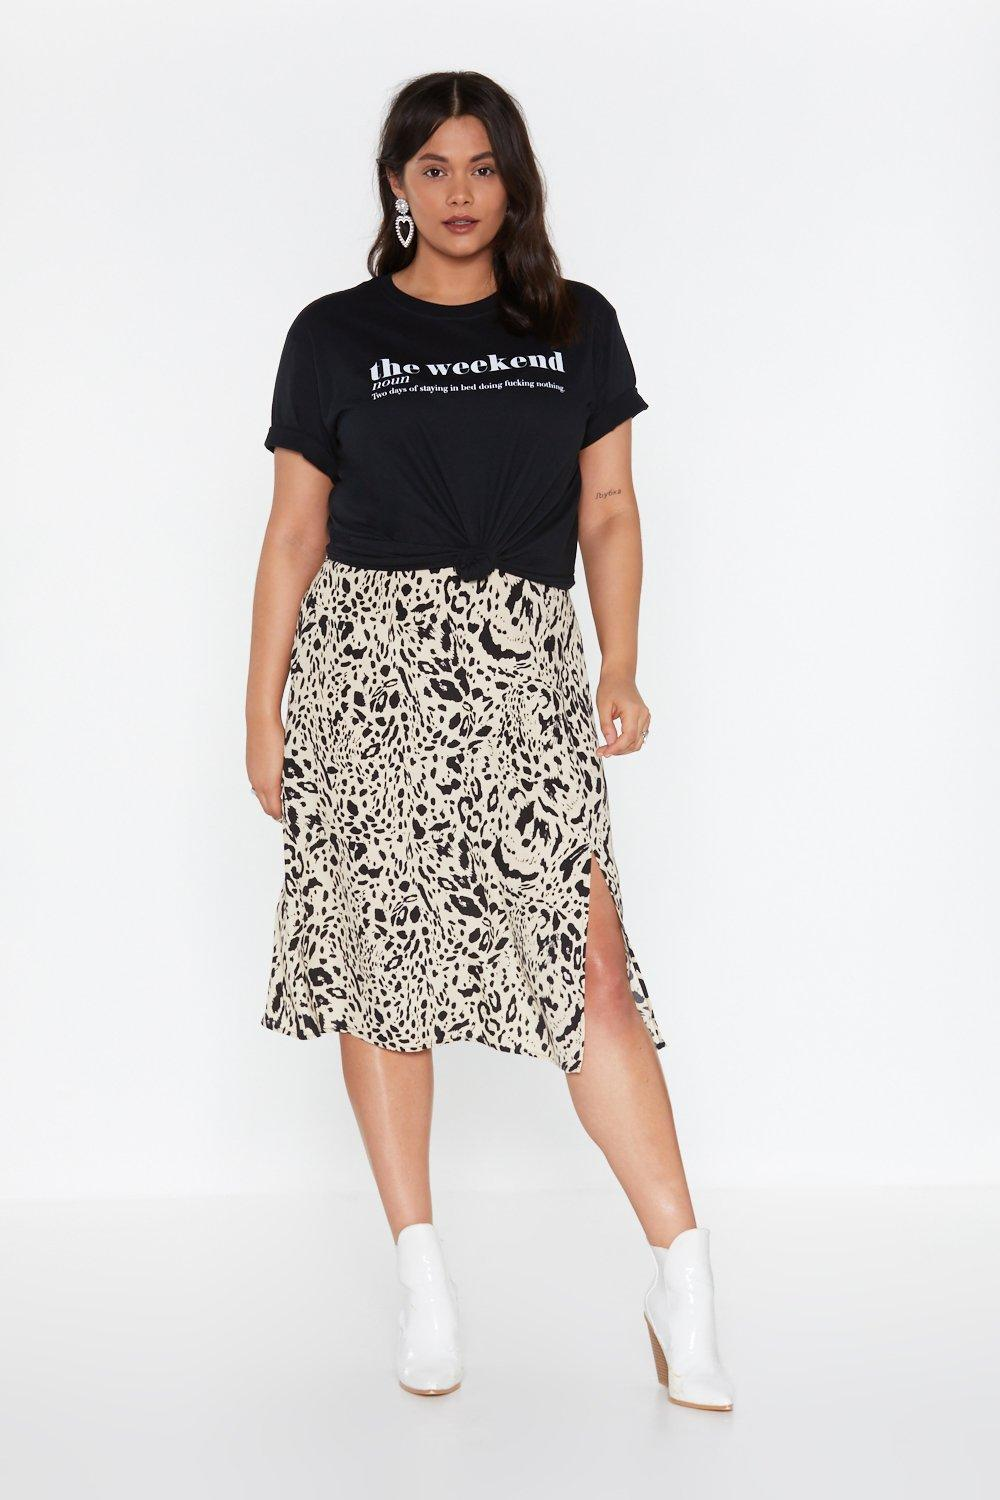 5829ddcf3 The Definition of Weekend Graphic Tee | Shop Clothes at Nasty Gal!